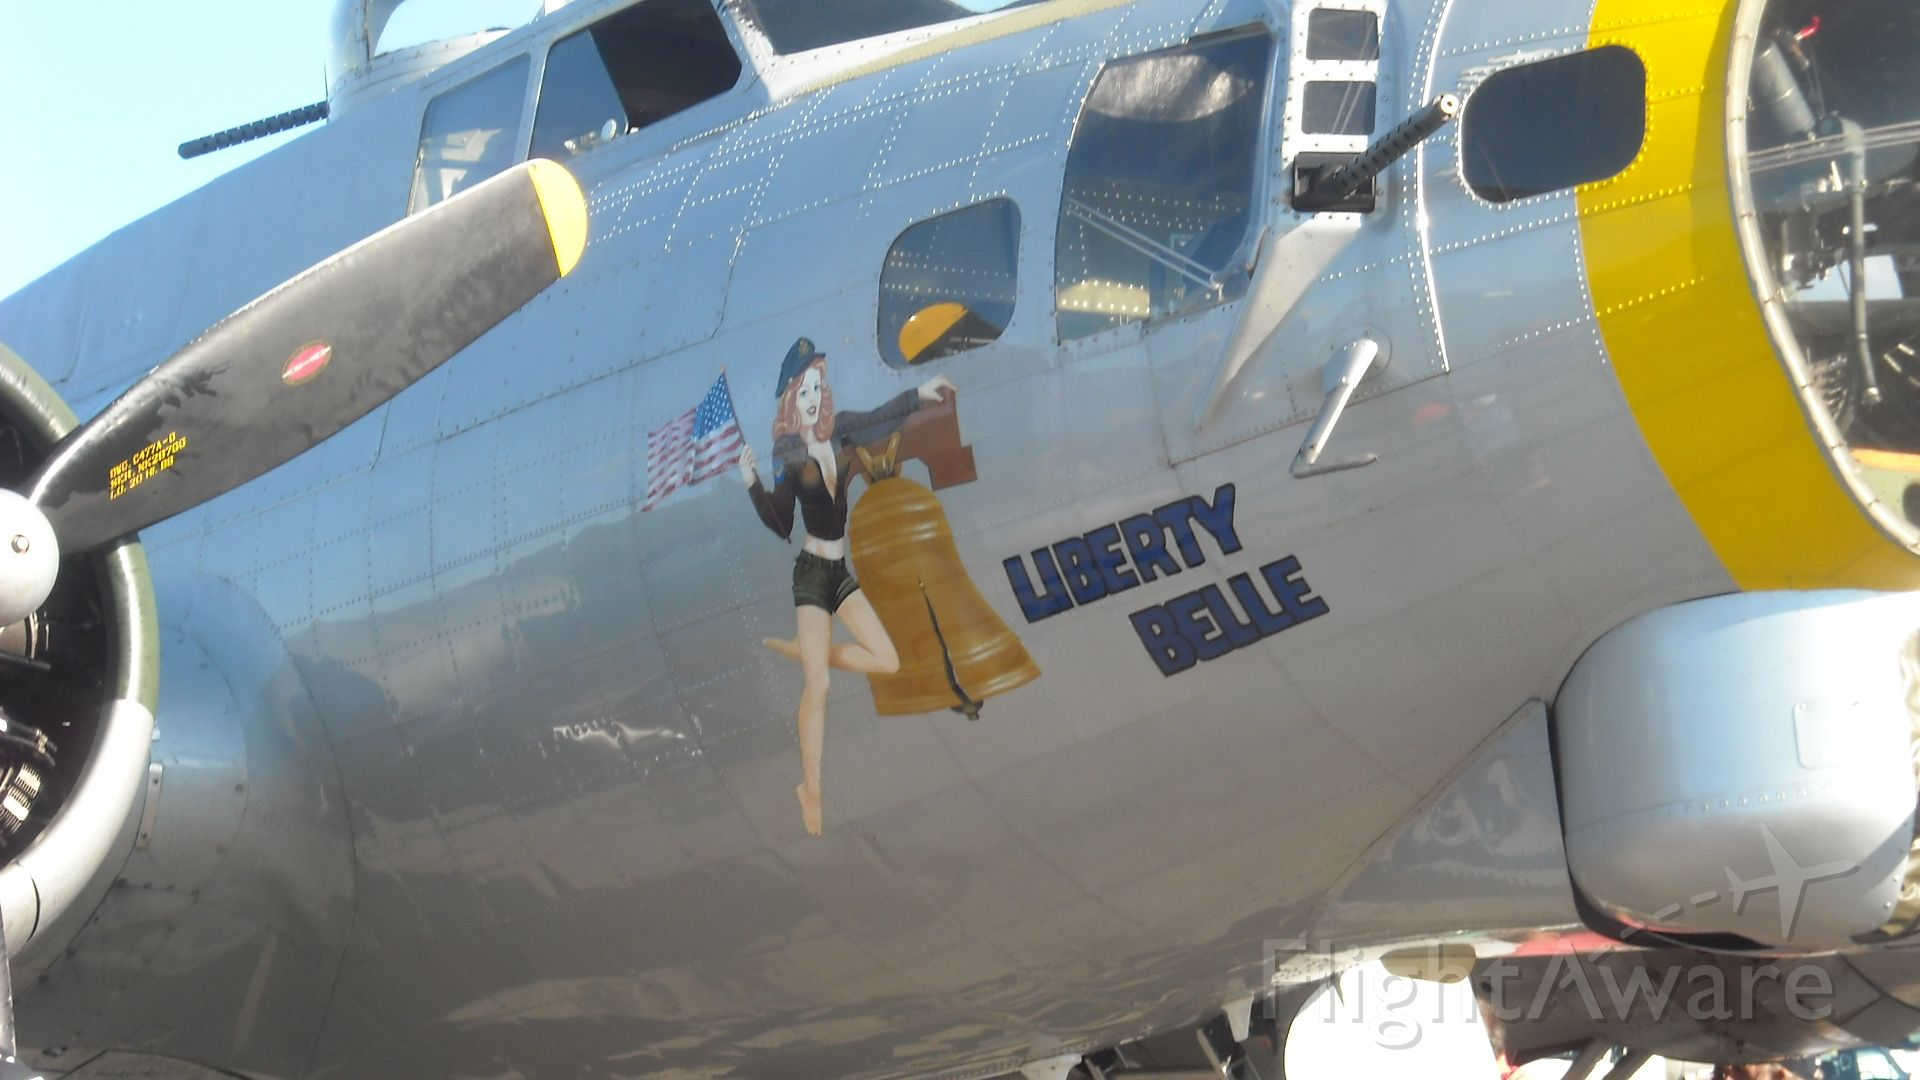 Boeing B-17 Flying Fortress —